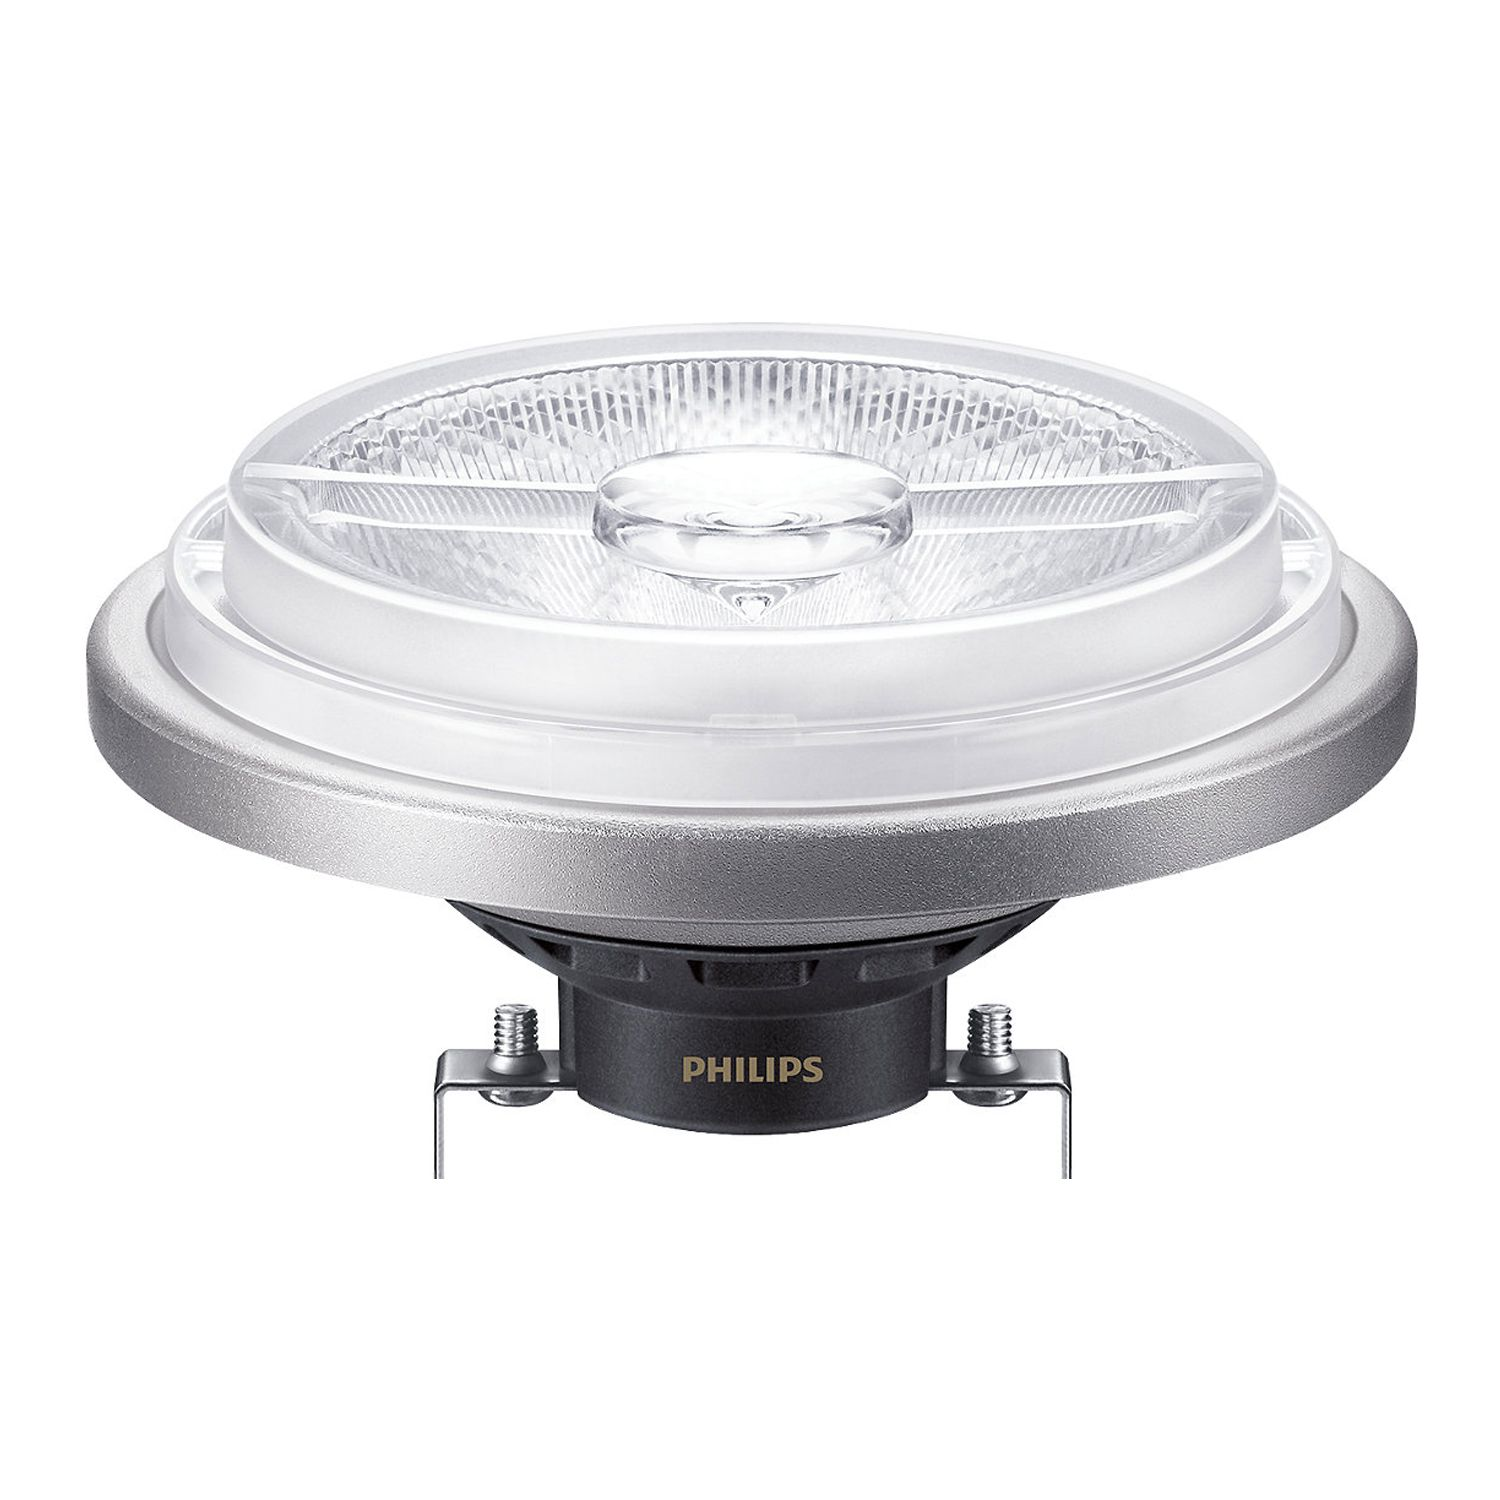 Philips LED Spot LV G53 AR111 (MASTER) 20W 930 45D 20W  | Dimmable - Equivalent 100W